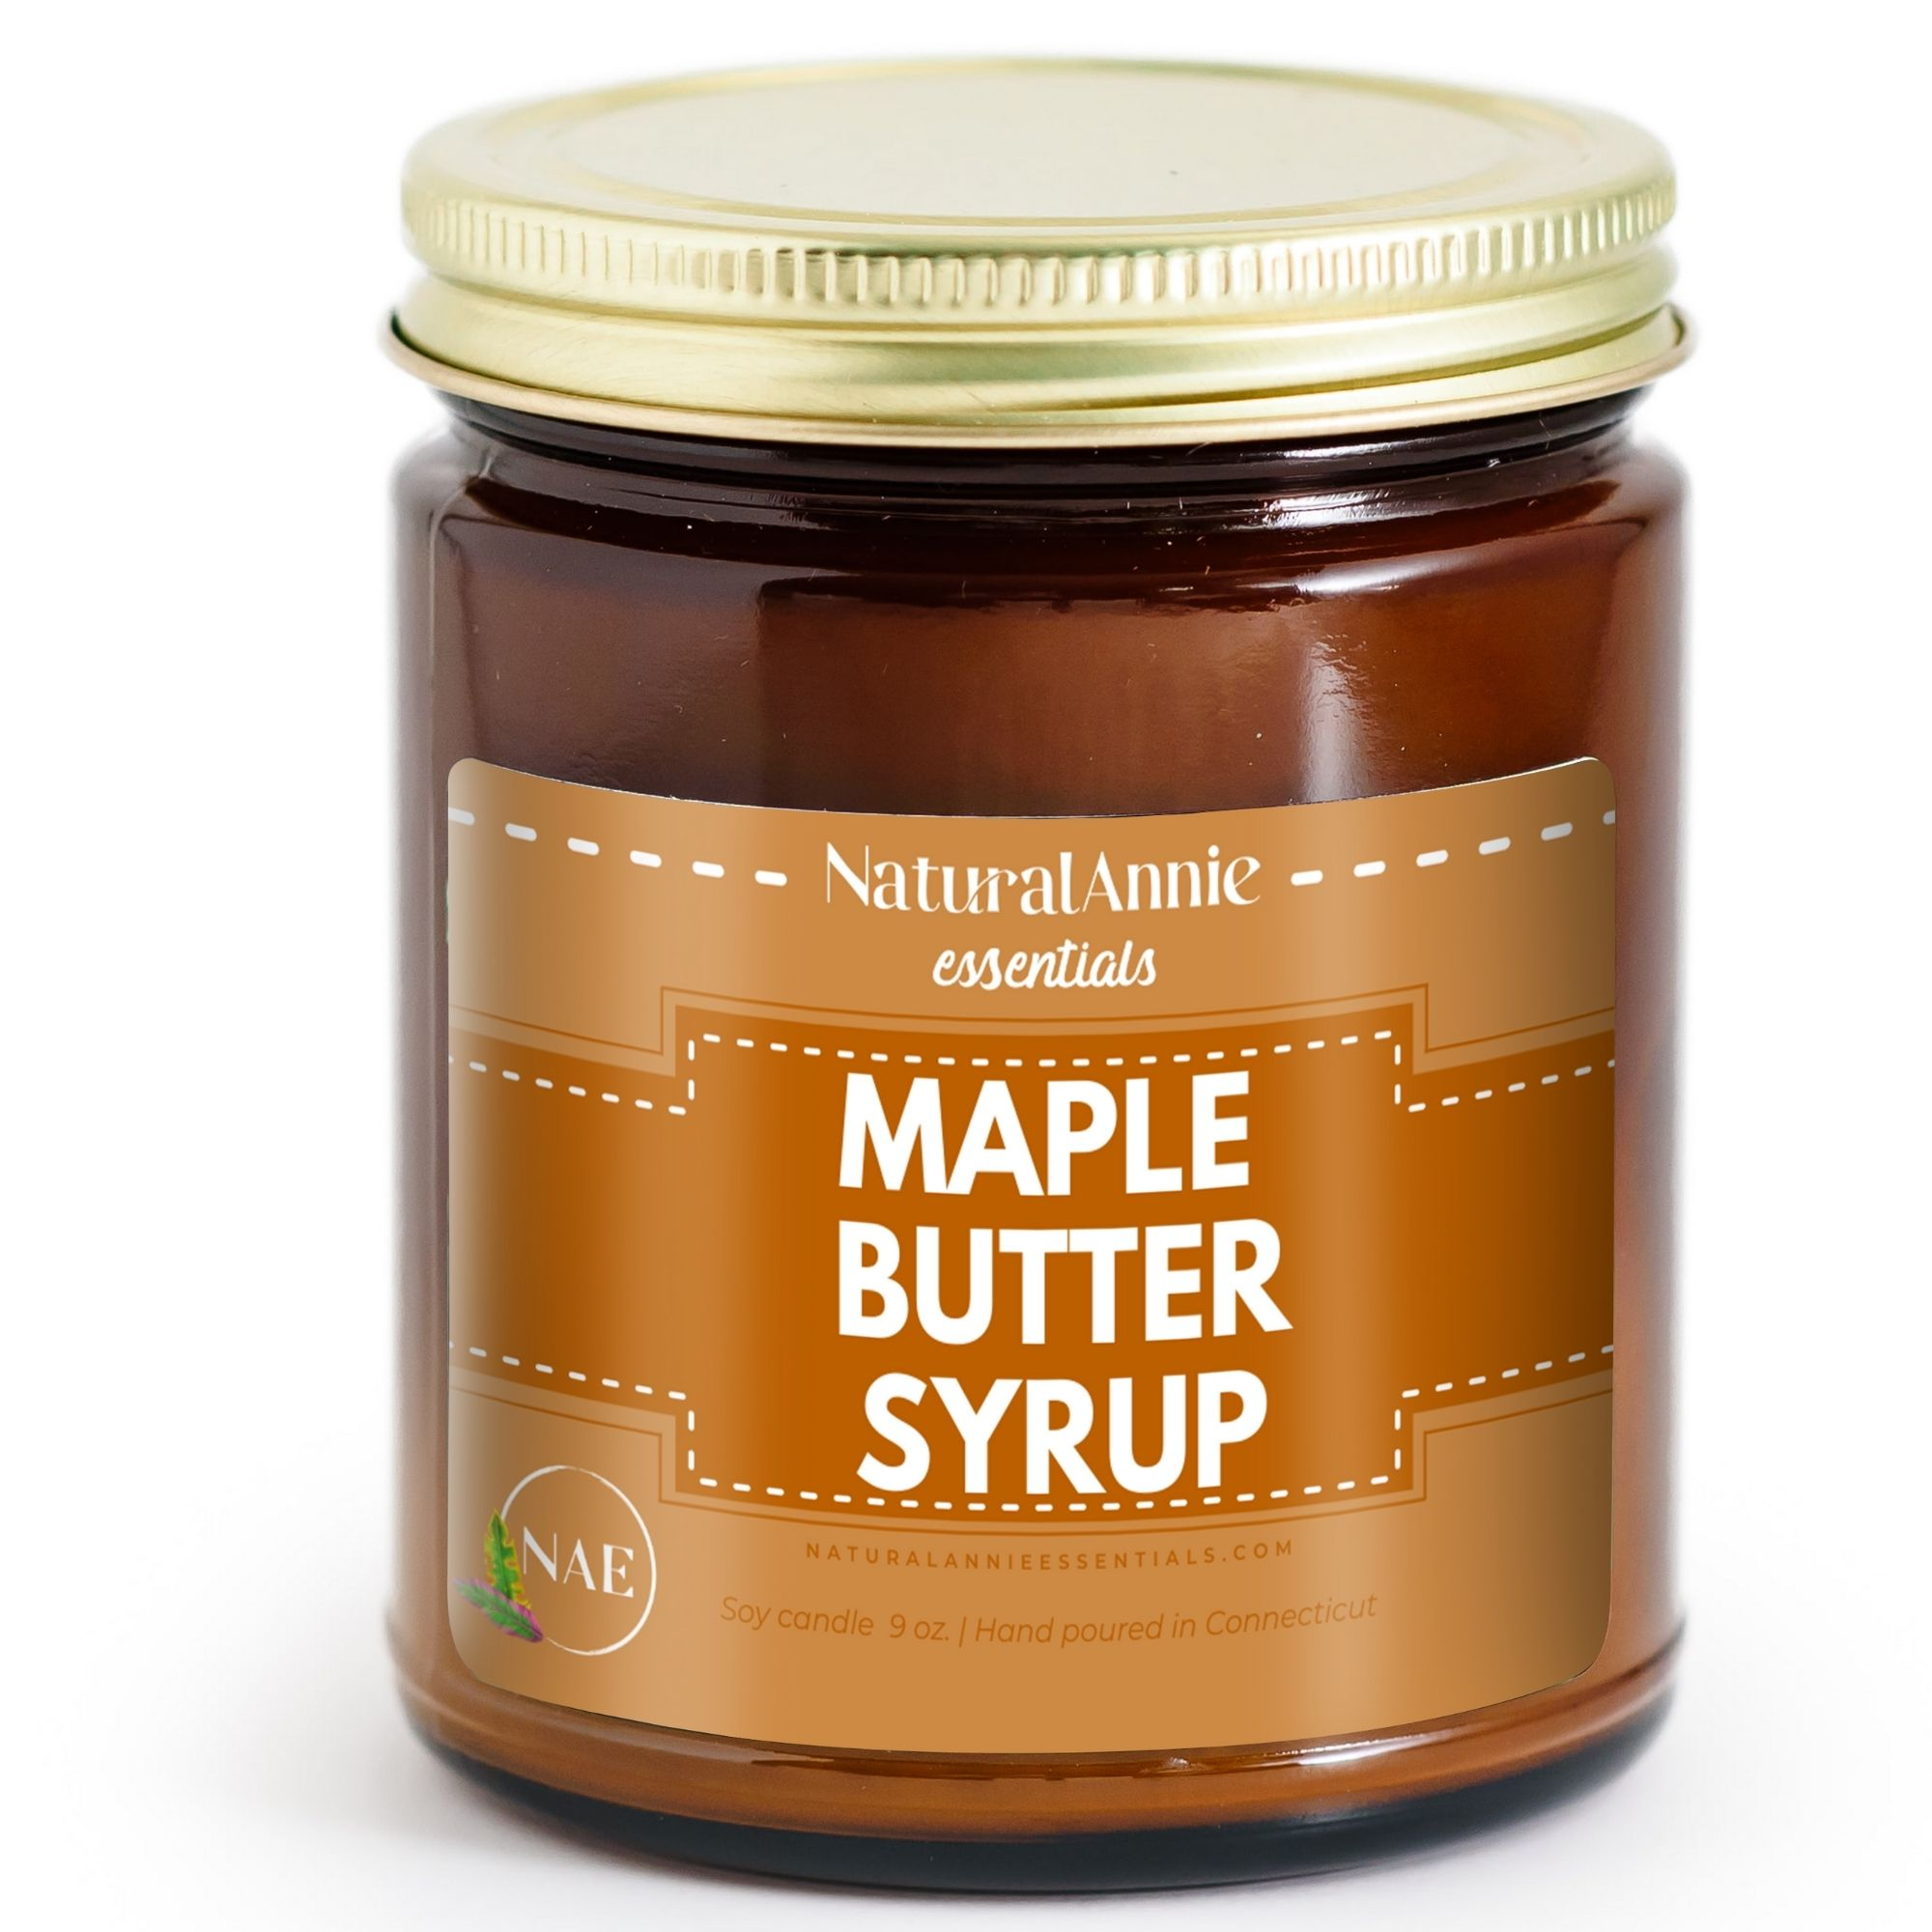 Maple Butter Syrup Scented Soy Candle by NaturalAnnie Essentials